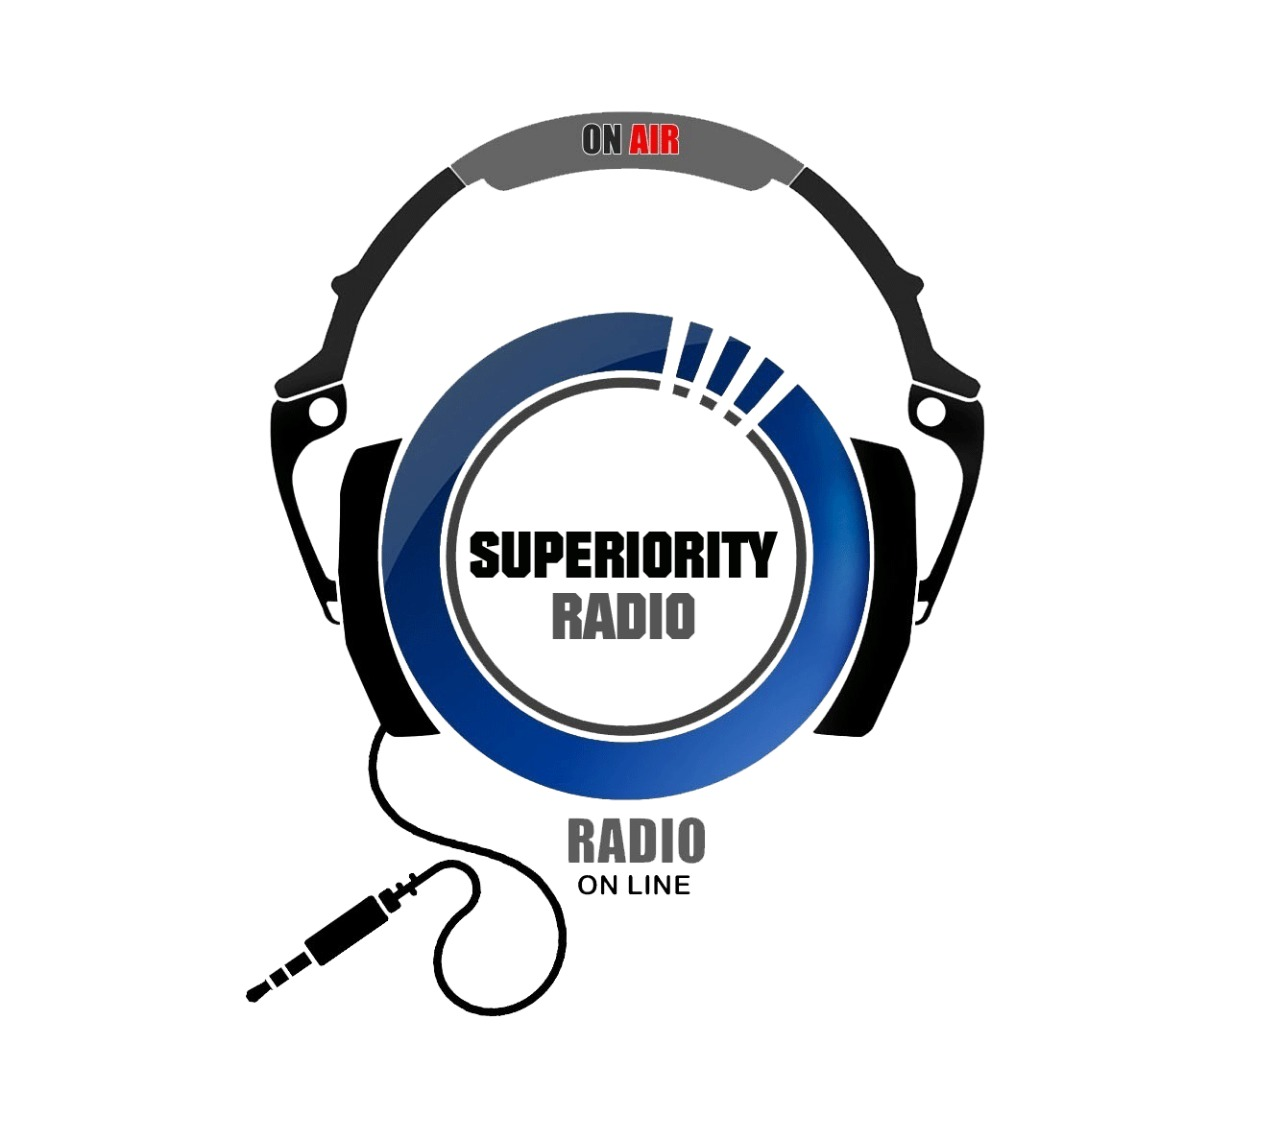 Superiority Radio